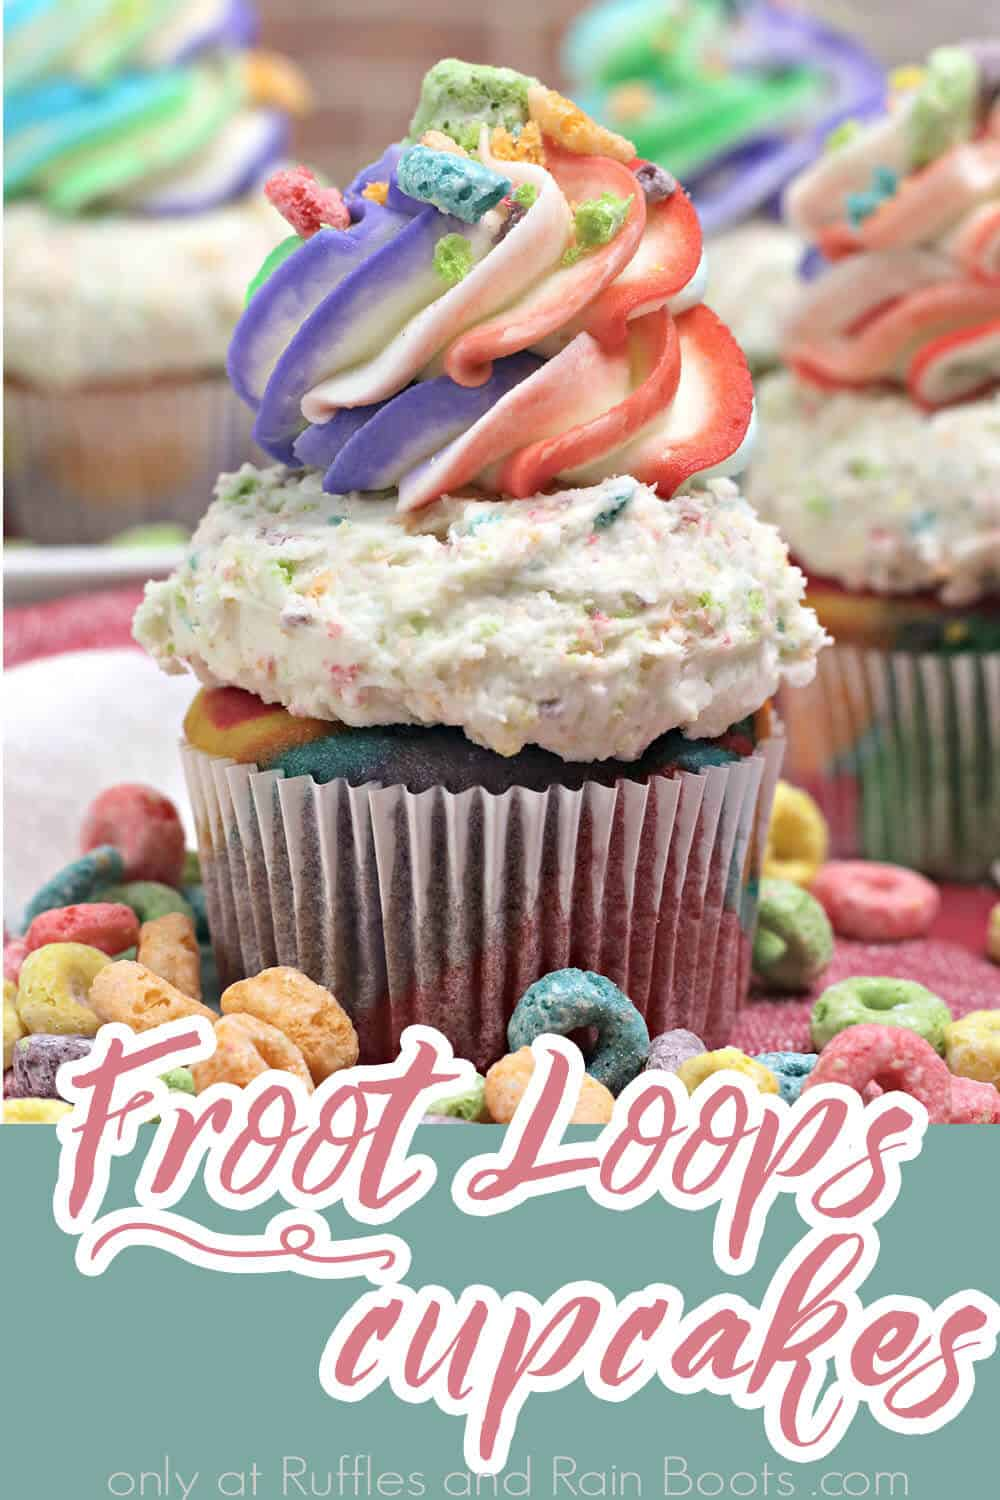 easy kids cupcakes fruit loops cereal cupcakes with text which reads froot loops cupcakes